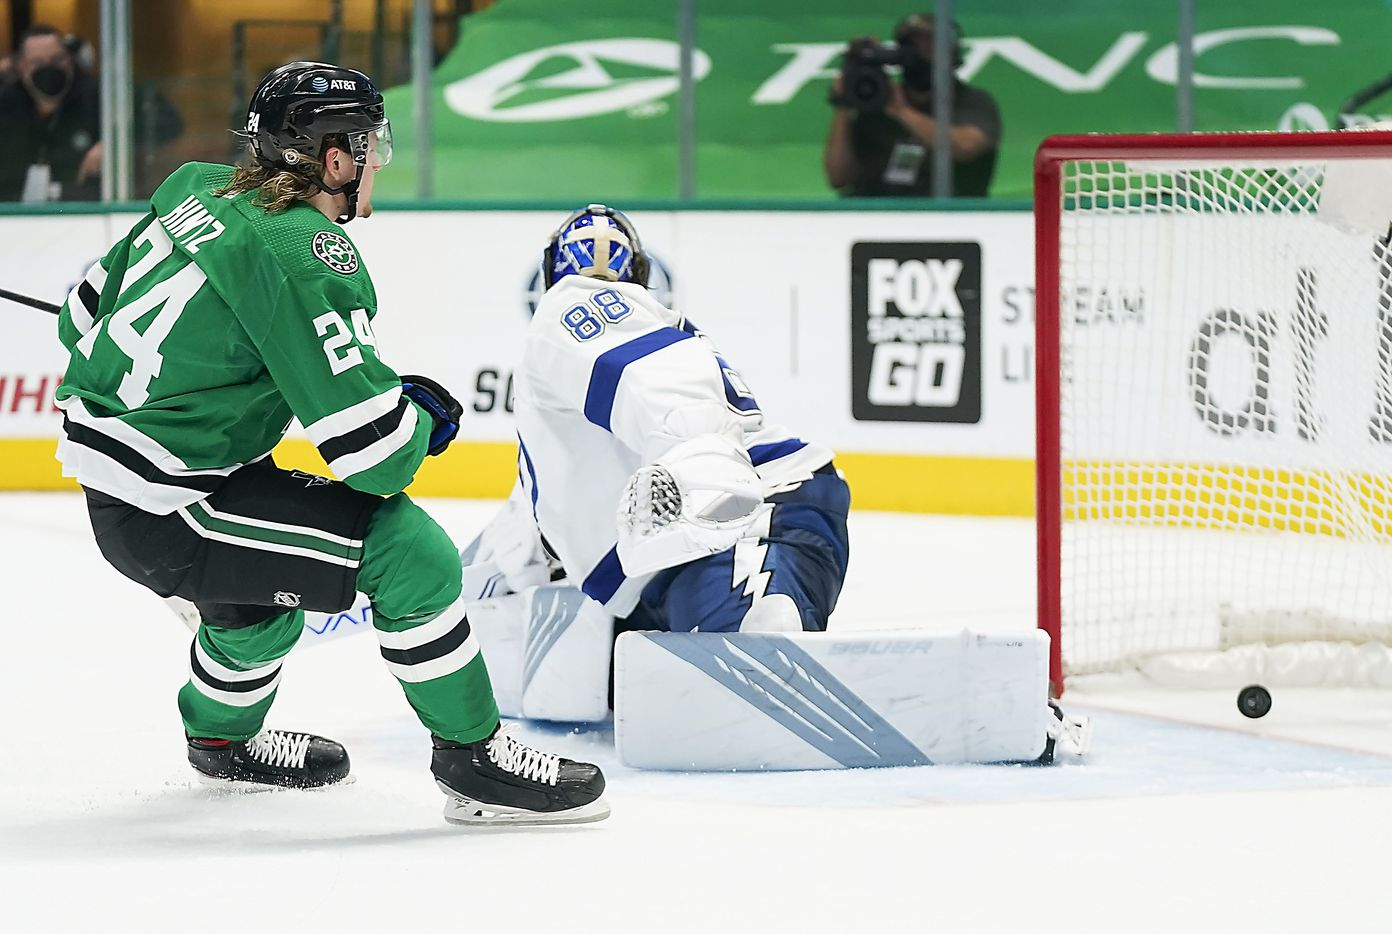 Dallas Stars left wing Roope Hintz (24) puts the puck past Tampa Bay Lightning goaltender Andrei Vasilevskiy (88) to score the game-winning goal at 18:39 of the third period of an NHL hockey game at the American Airlines Center on Thursday, March 25, 2021, in Dallas. The Stars won the game 4-3. (Smiley N. Pool/The Dallas Morning News)